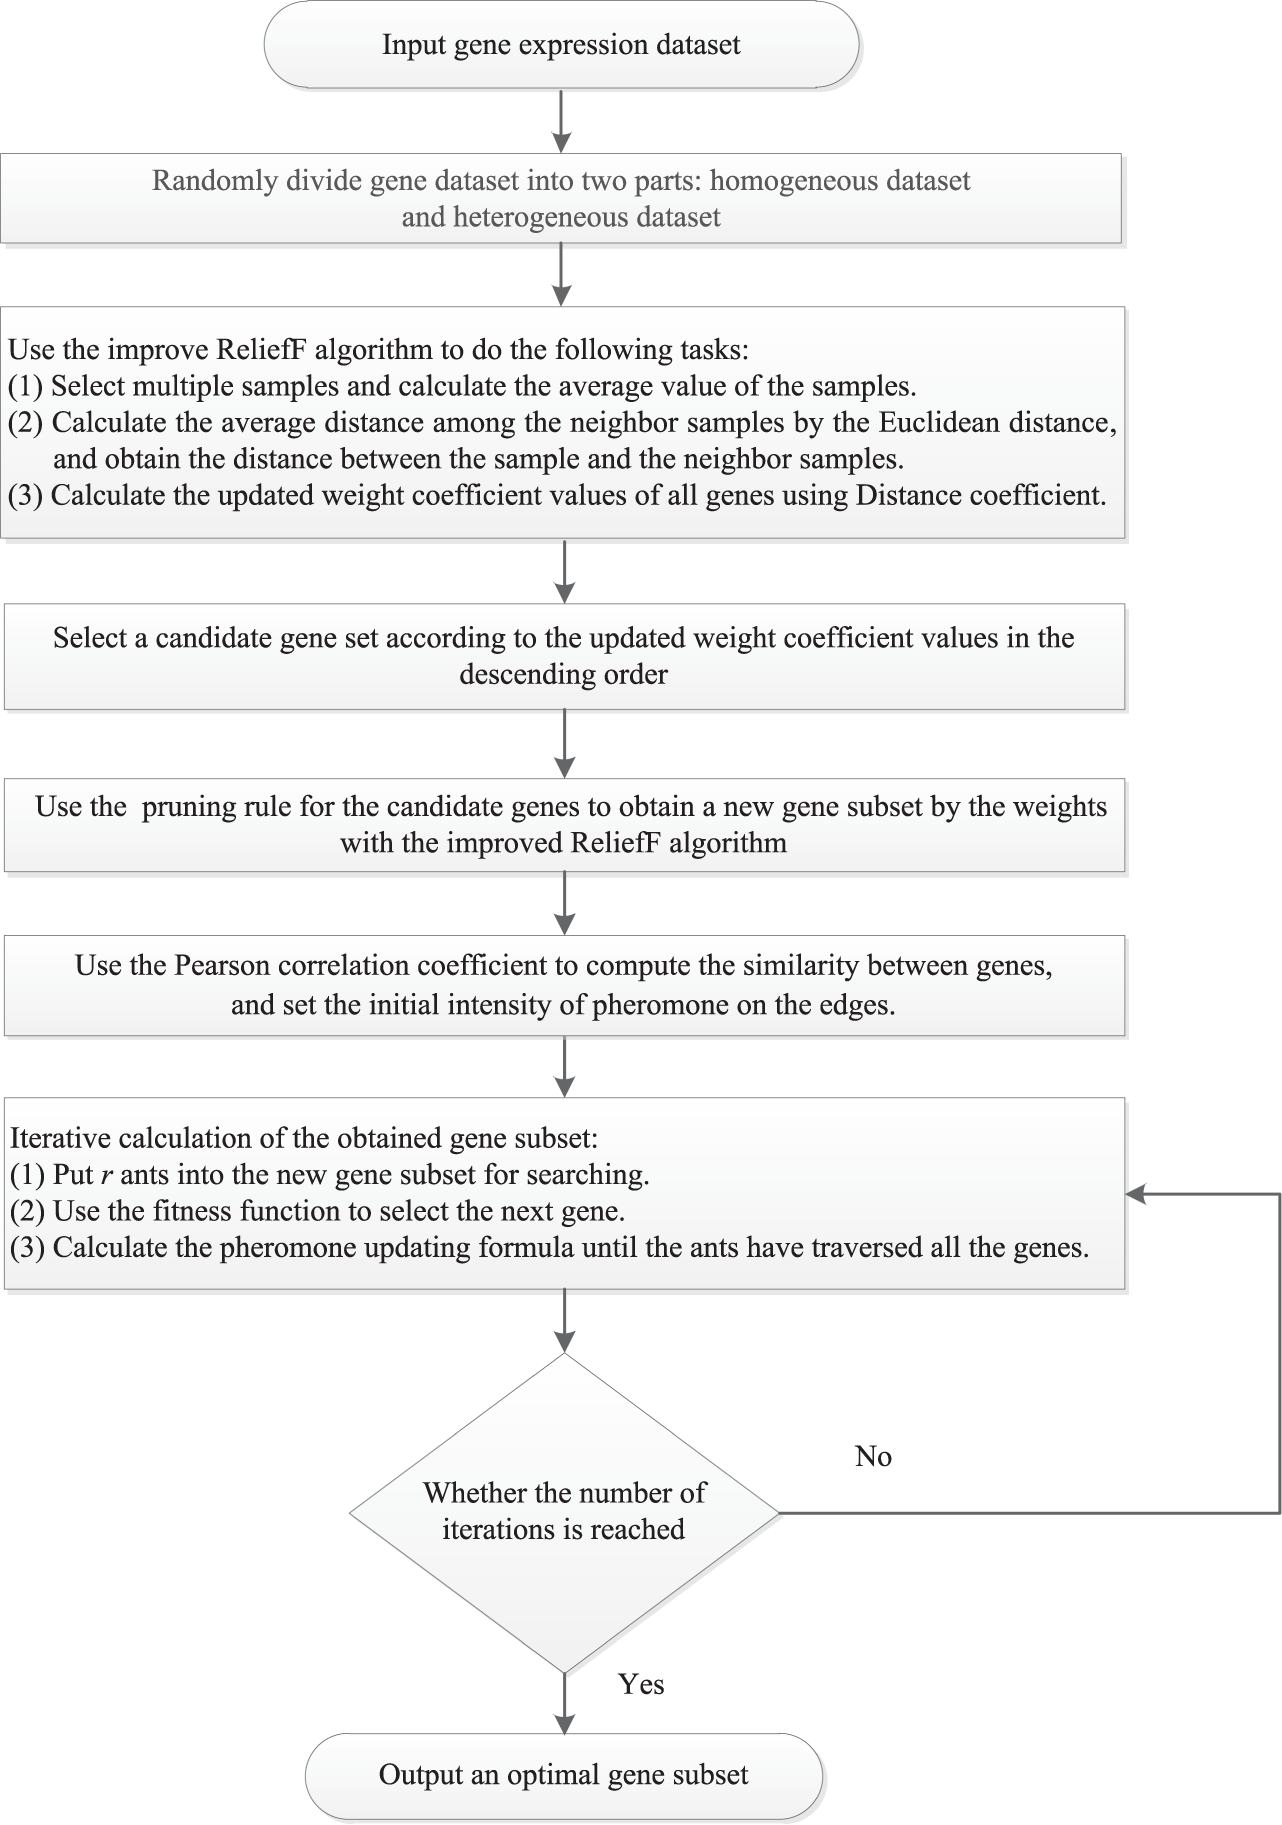 A Hybrid Gene Selection Method Based on ReliefF and Ant Colony